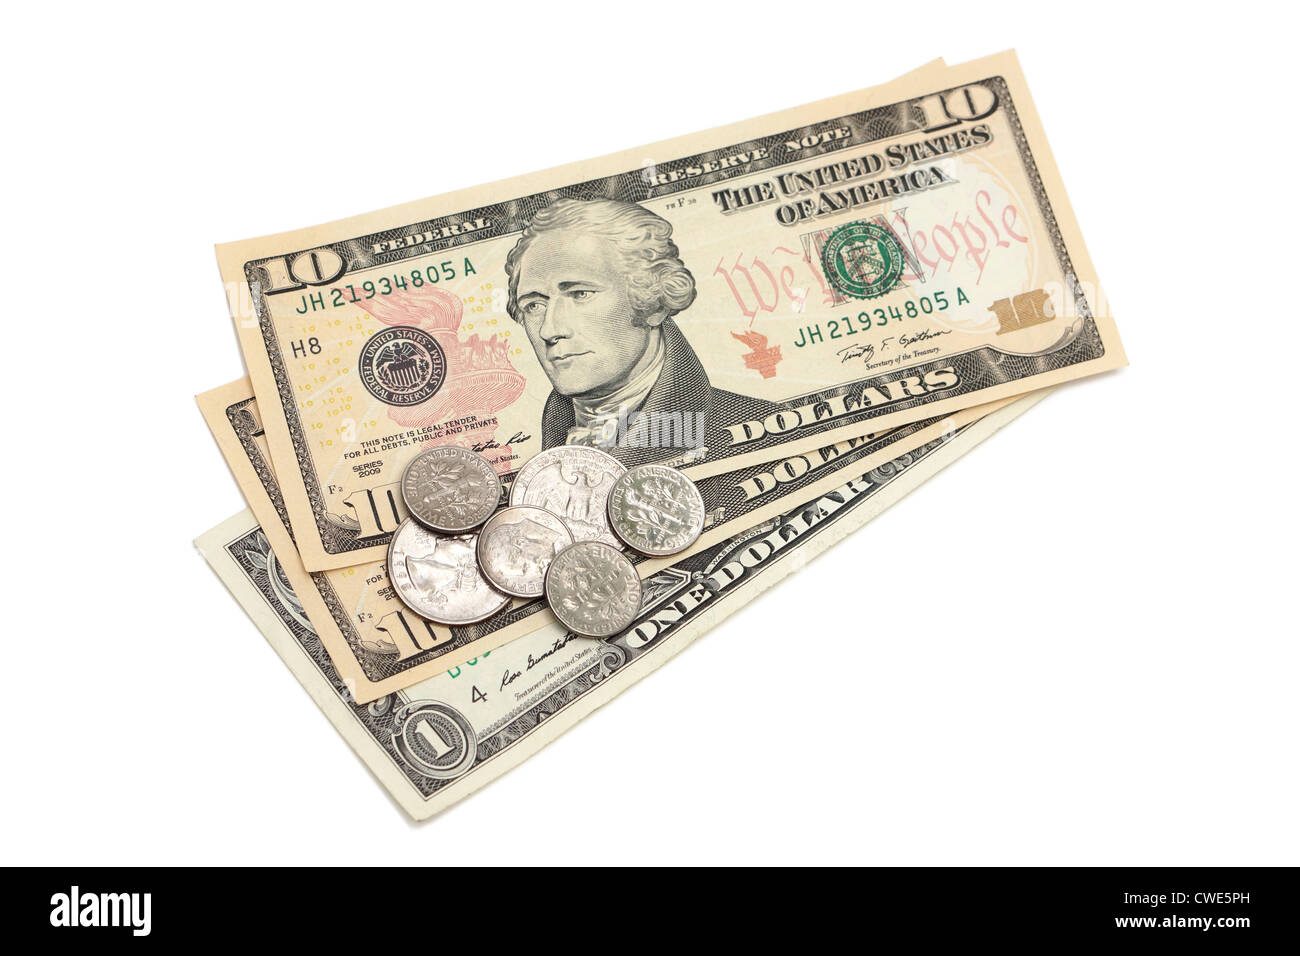 Dollar Bills, US Currency, Bank Notes - Stock Image